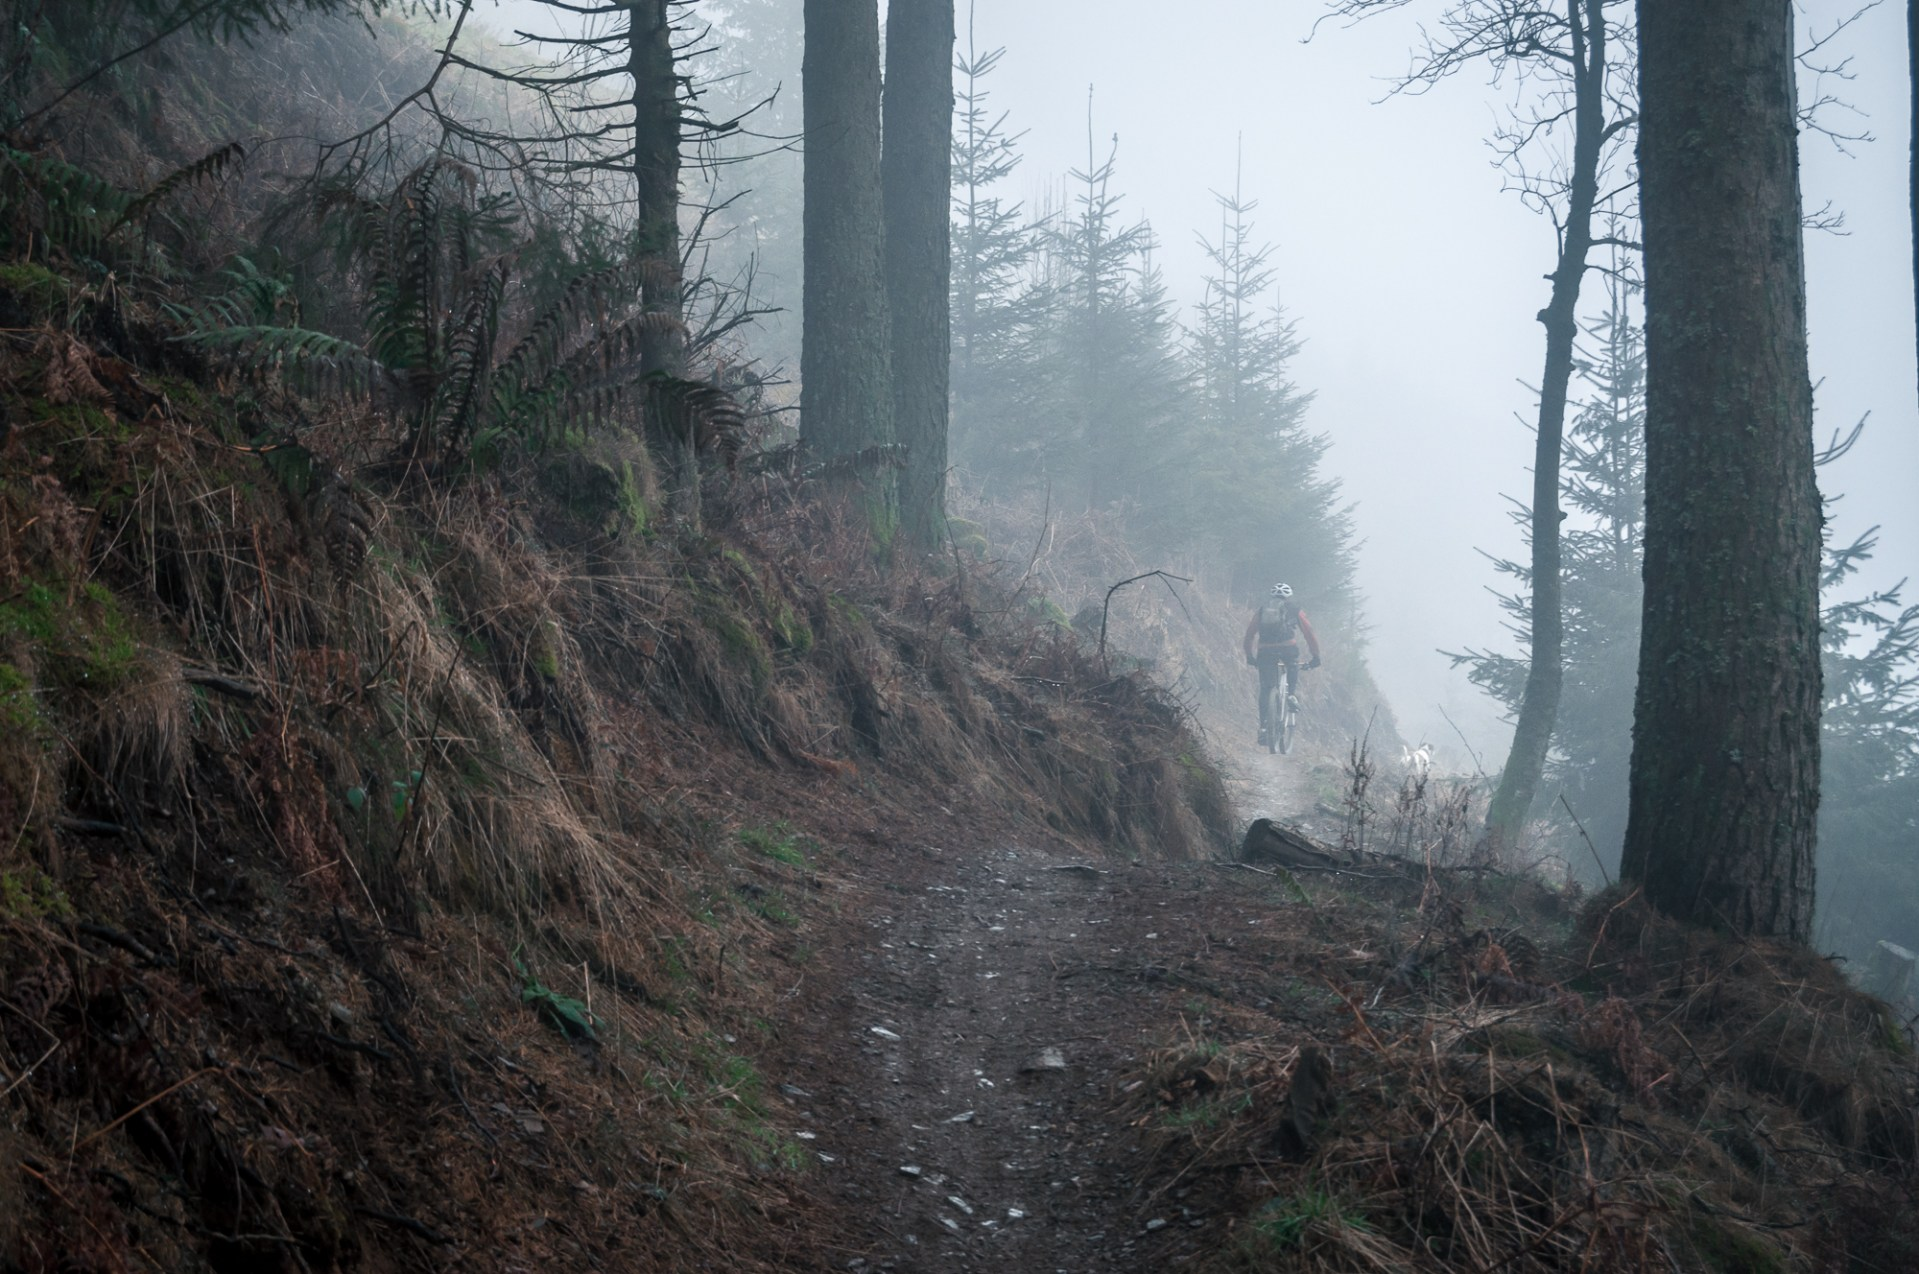 Whinlatter in the mist